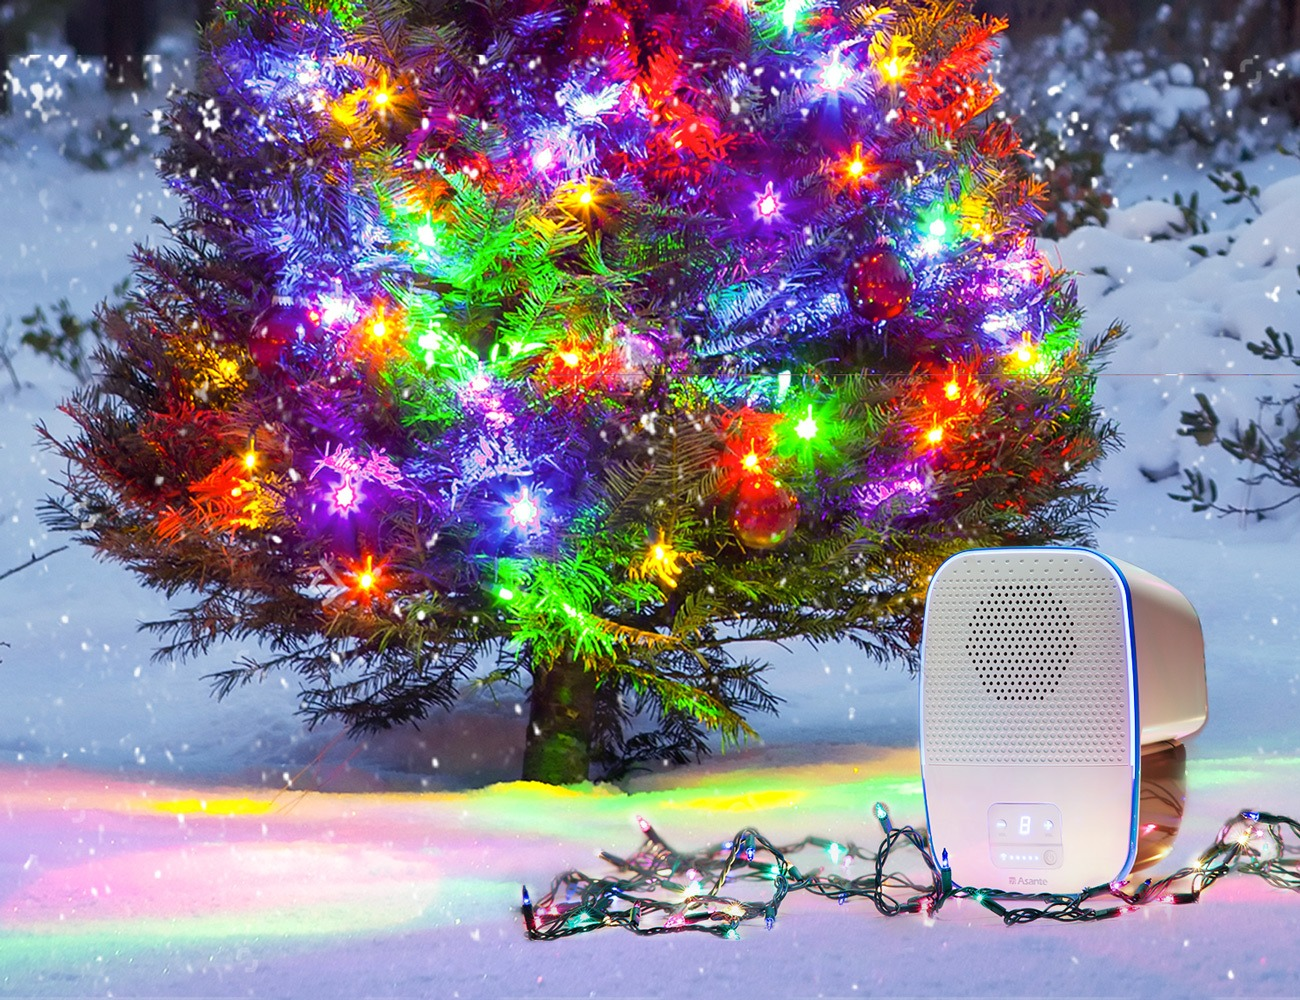 TapTap – Christmas Gadget; Create Your Own Musical Light Show